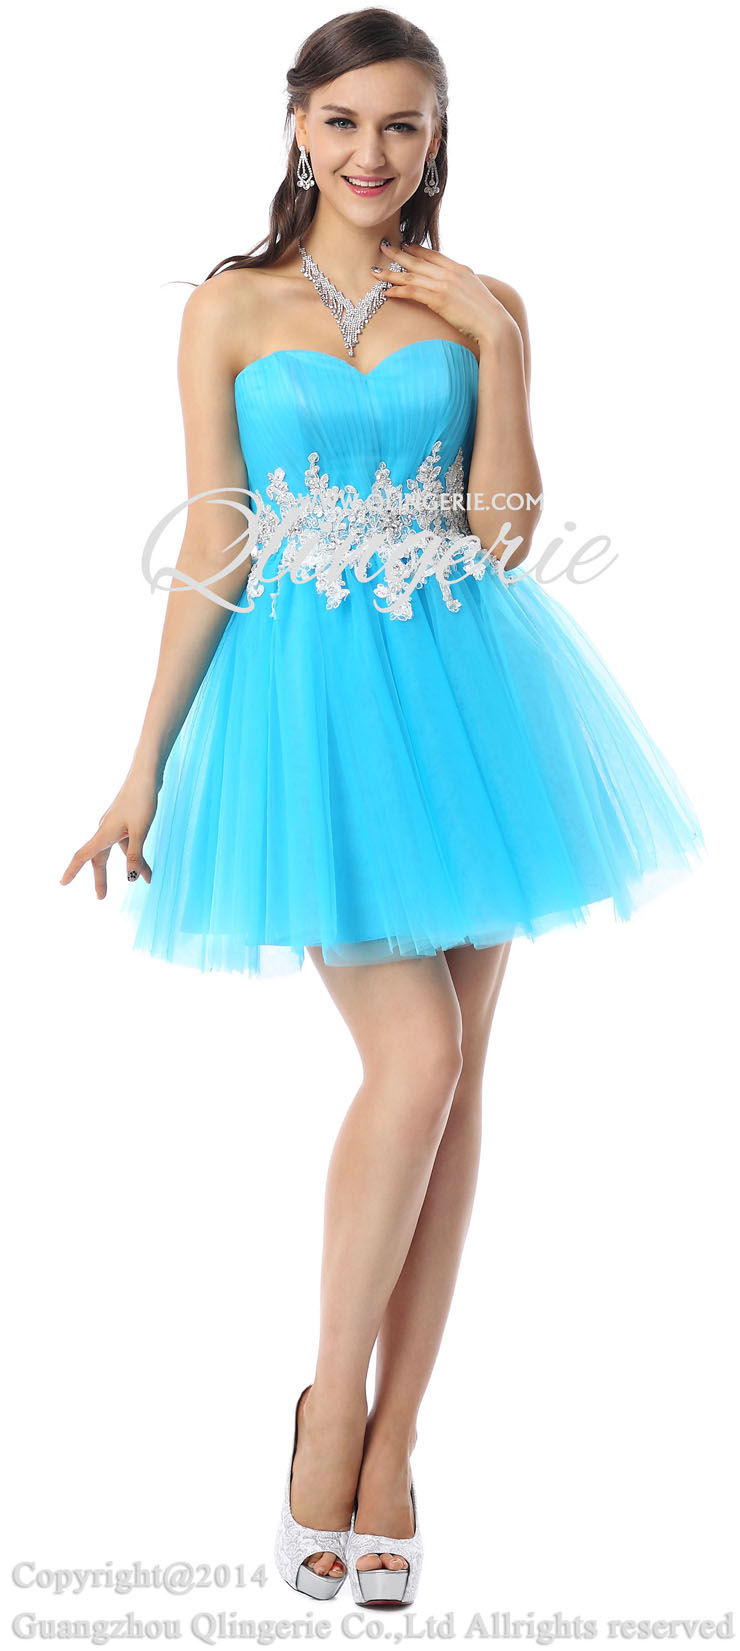 Sale a line sweet 16 dresses hot selling sweetheart dresses y30060